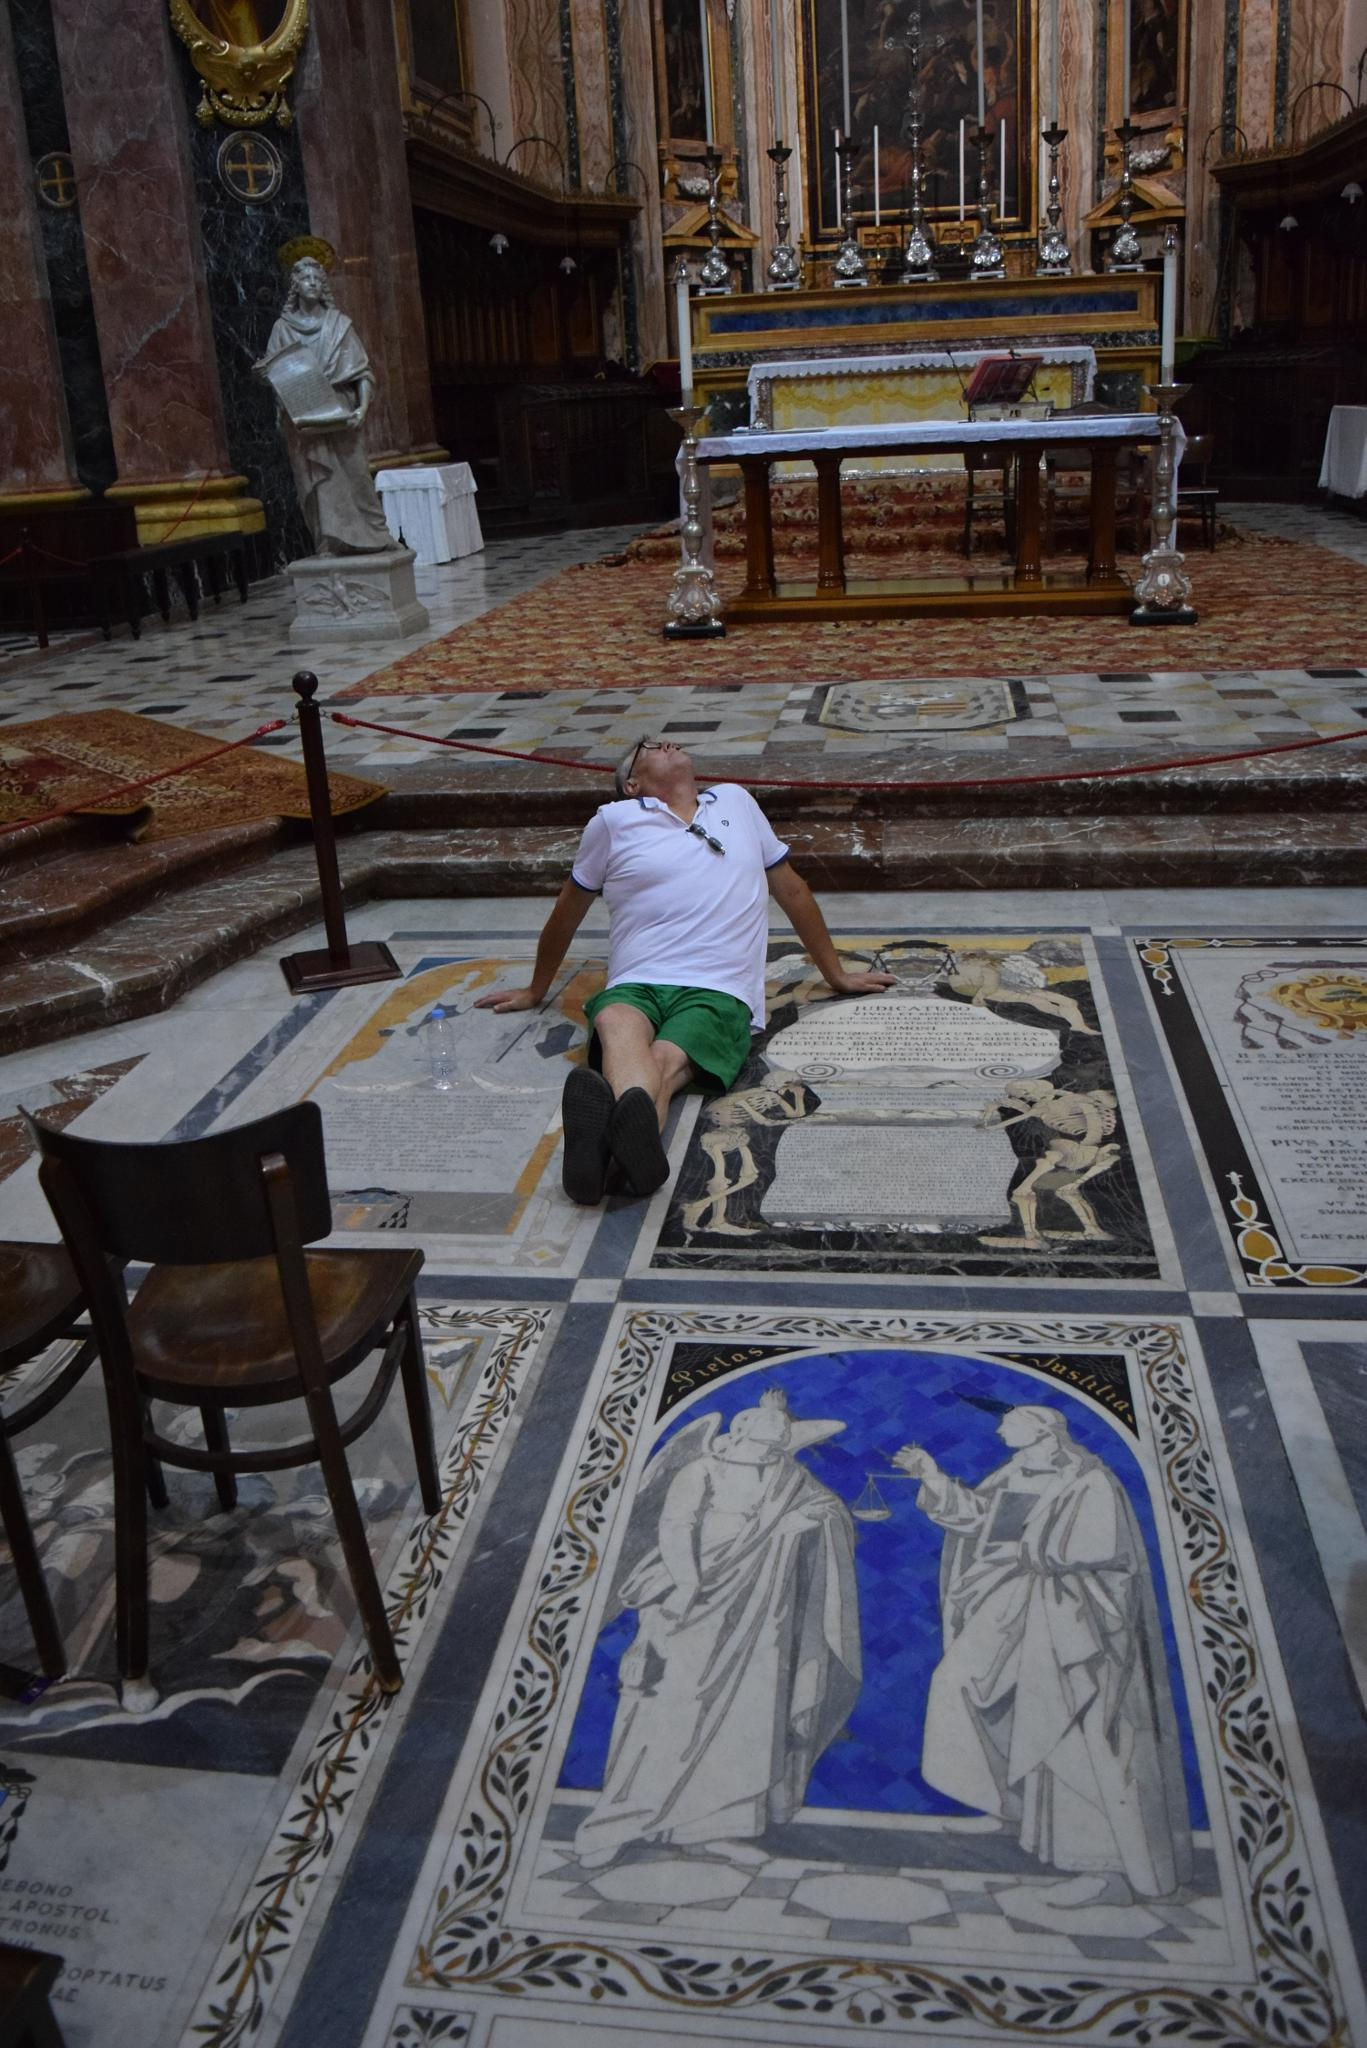 only micky would lie on the floor in church to look at the artwork on the ceiling by mick.acton1